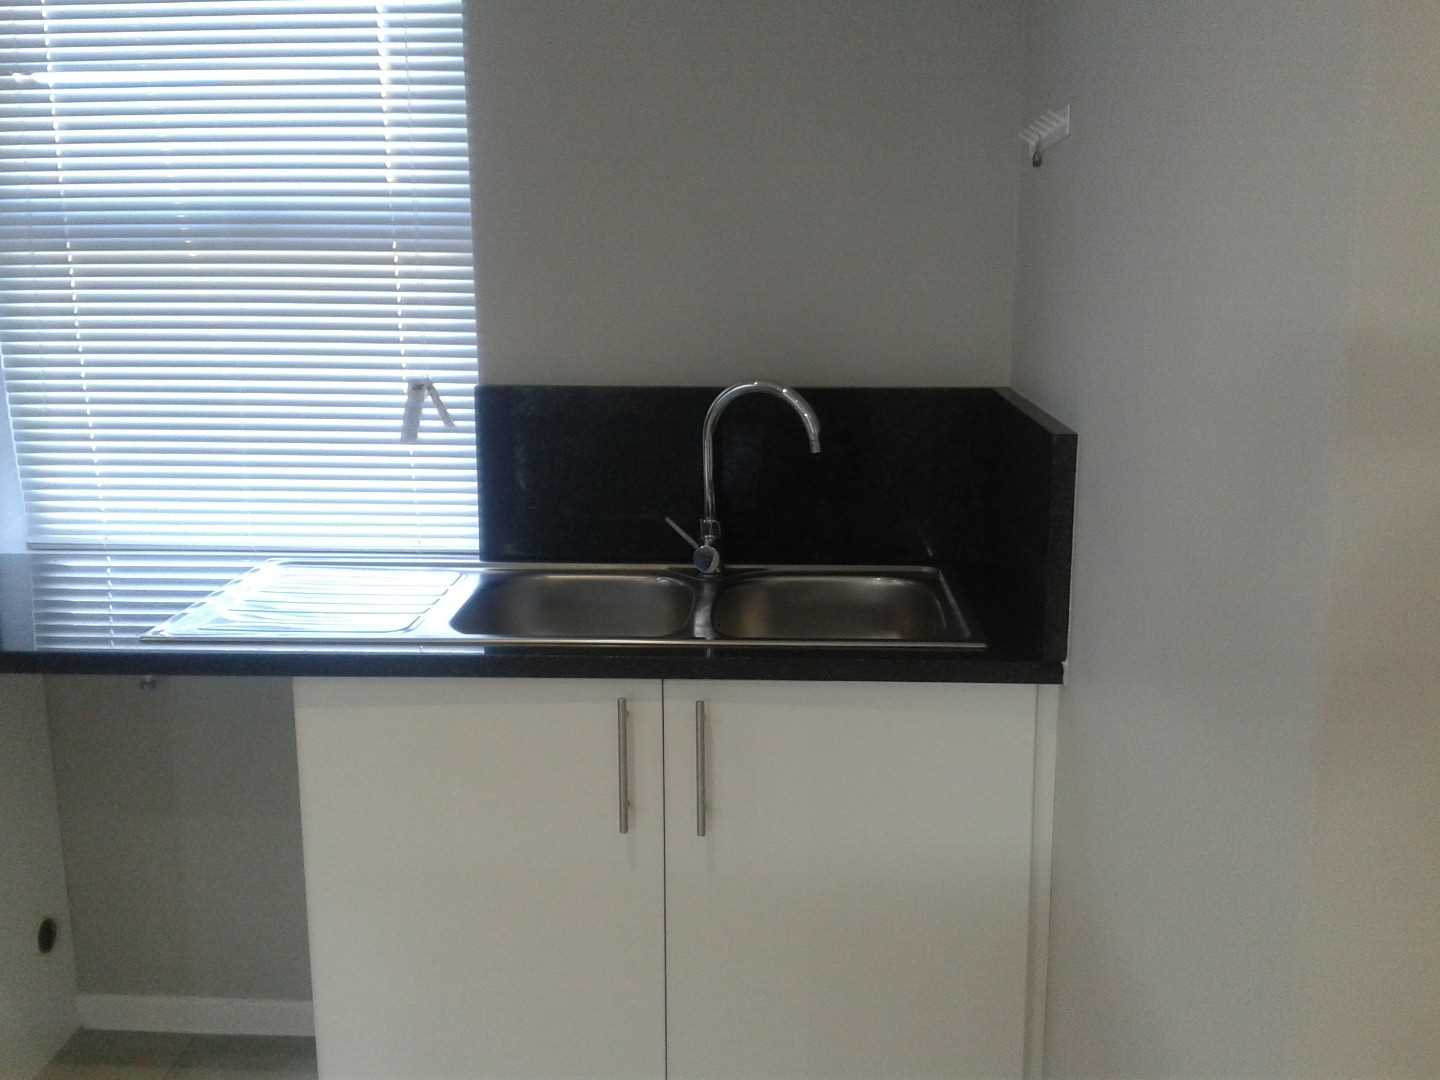 Basin with place for a Kitchen appliance.